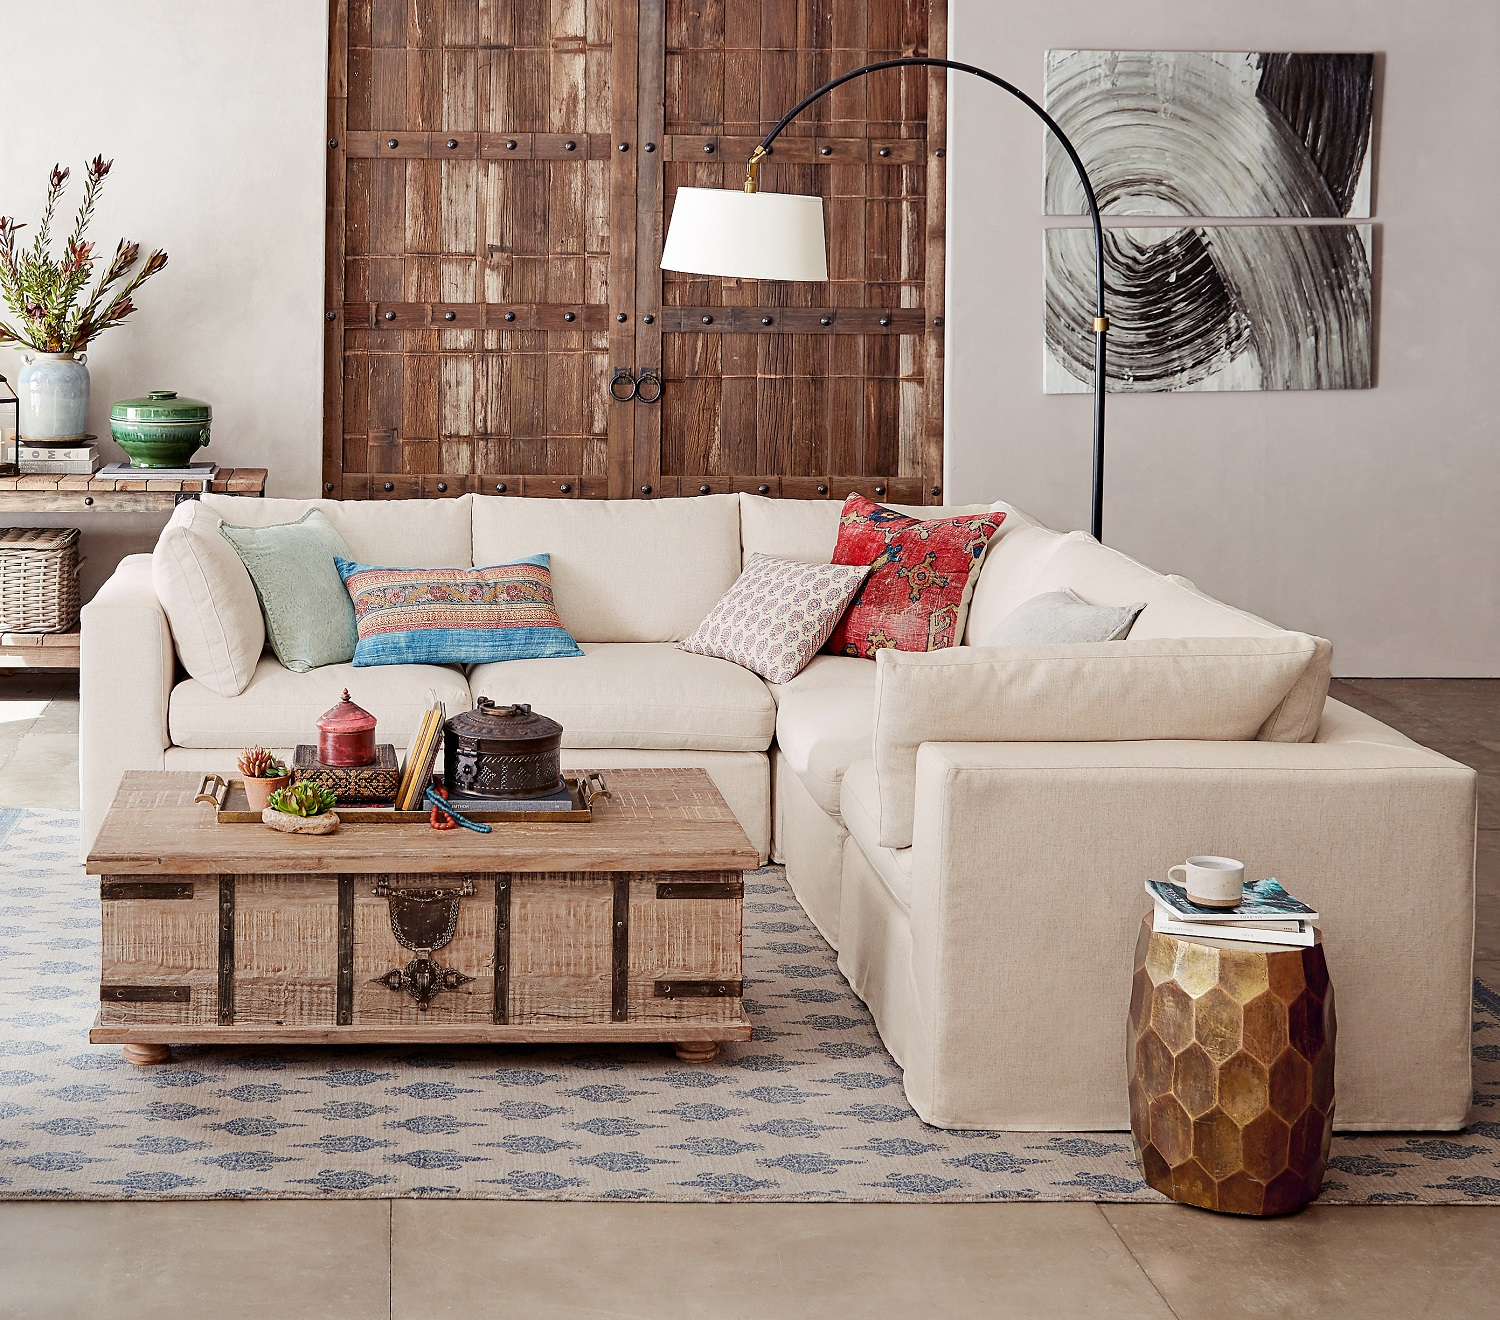 Establish a comfortable conversation area in an open floor plan with a this square arm, slipcovered corner sectional, a rug and large accent light to anchor the space. Photo courtesy of Pottery Barn.